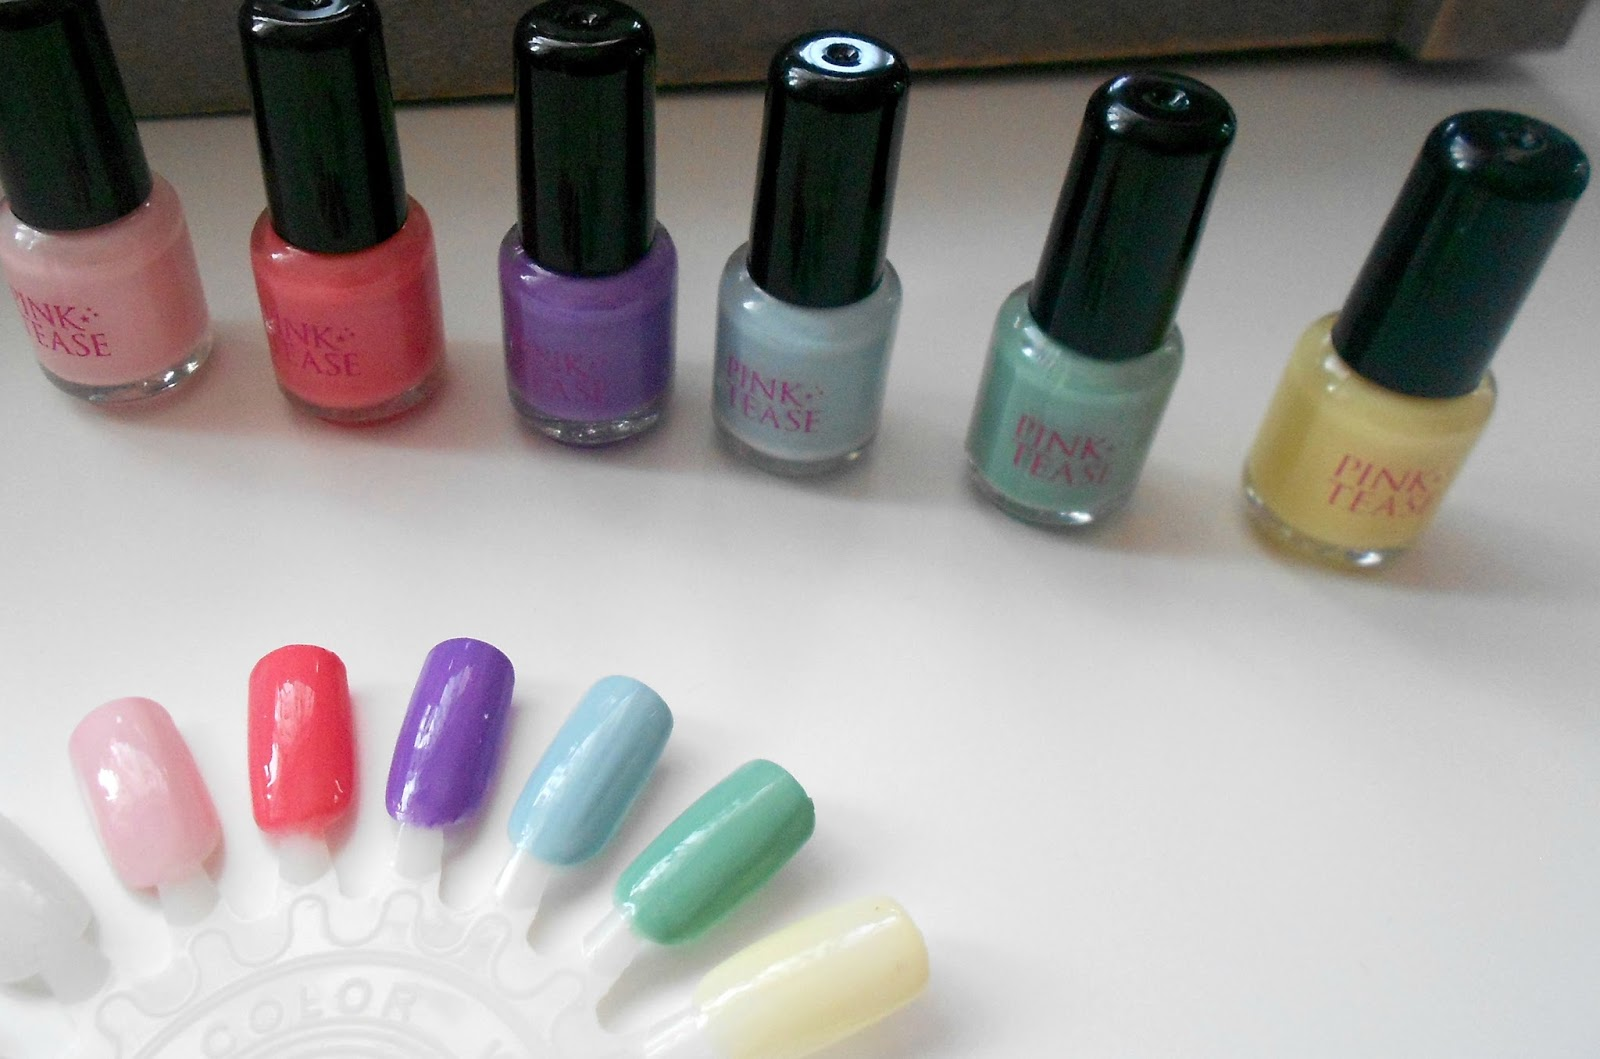 makeup rumours haul nail polish pastel